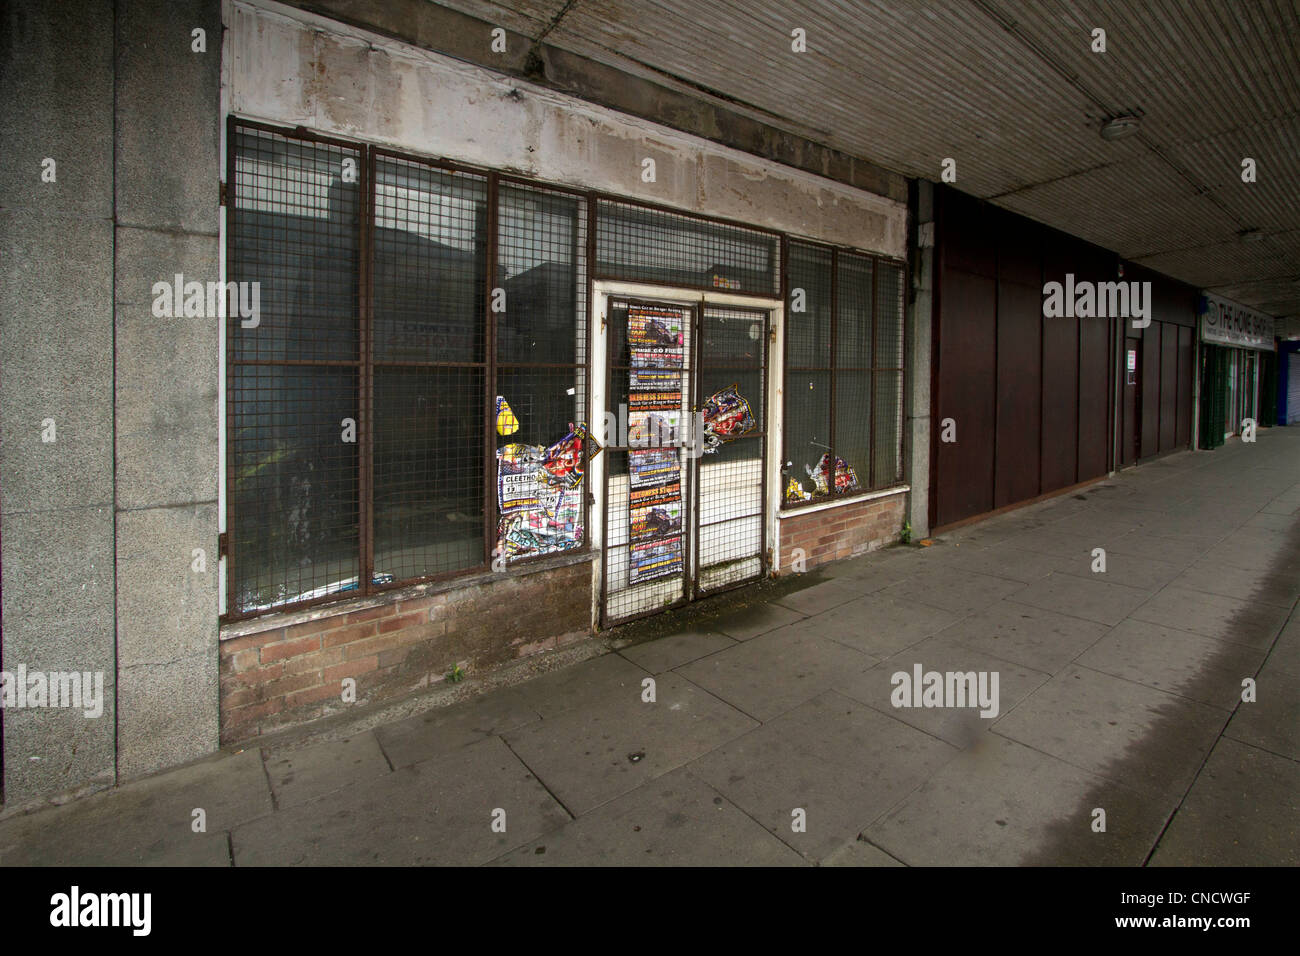 Empty shops in Freeman Street Grimsby, Lincolnshire.  High Street Decline. - Stock Image